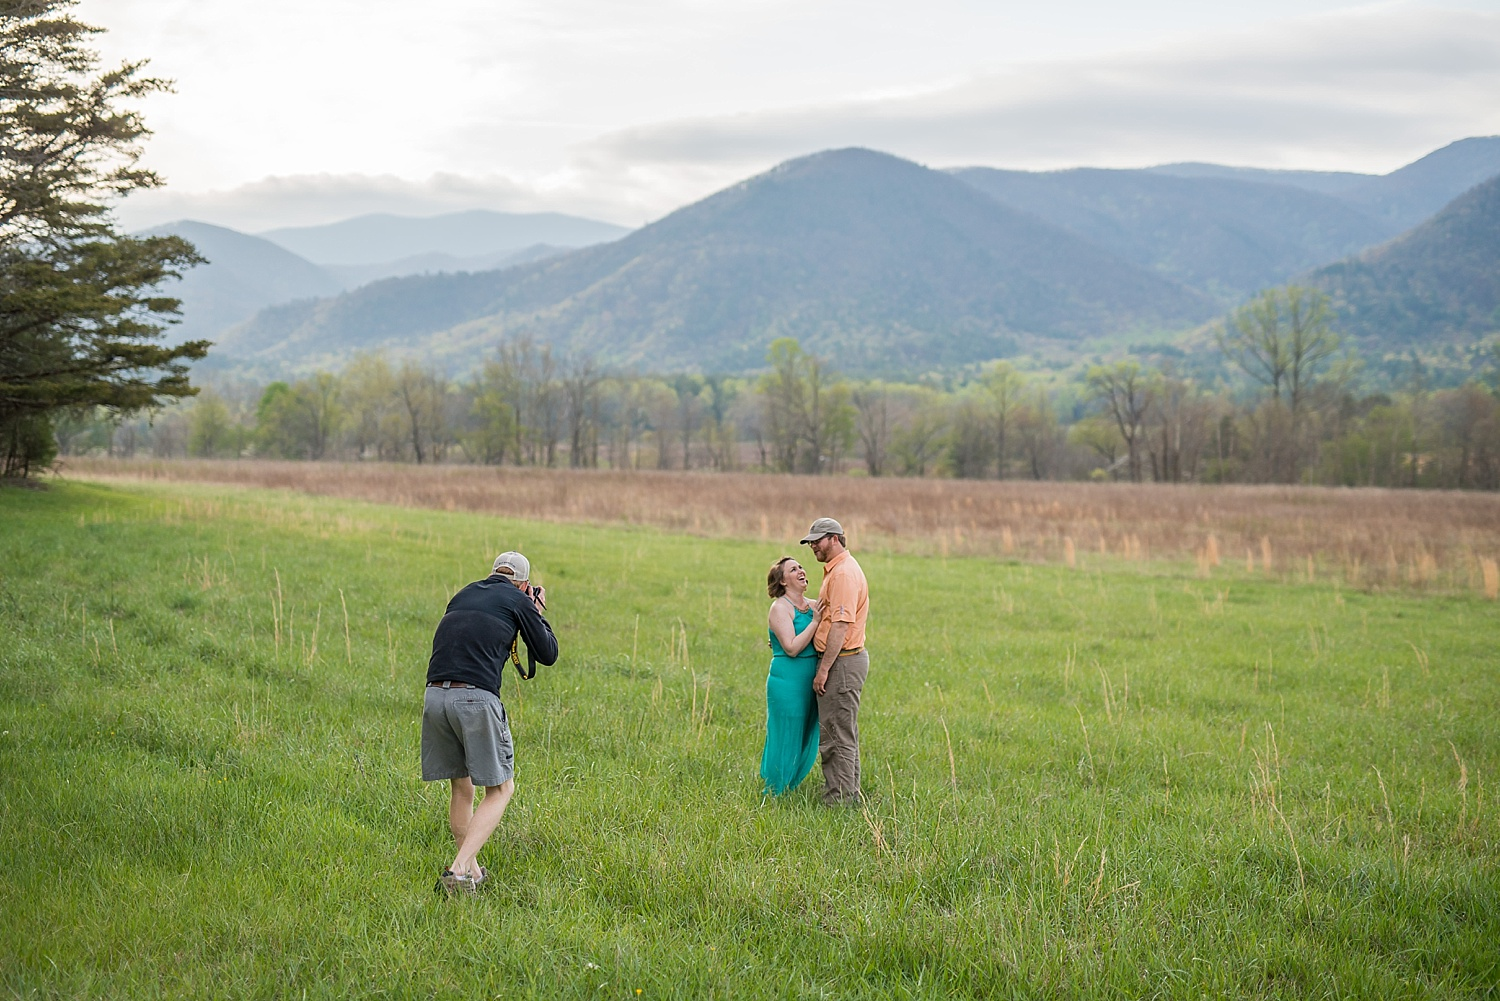 Photographing our dear friend's pregnancy announcement photos in Cade's Cove was definitely a highlight of the year! And it was a photo bucket list item checked off!